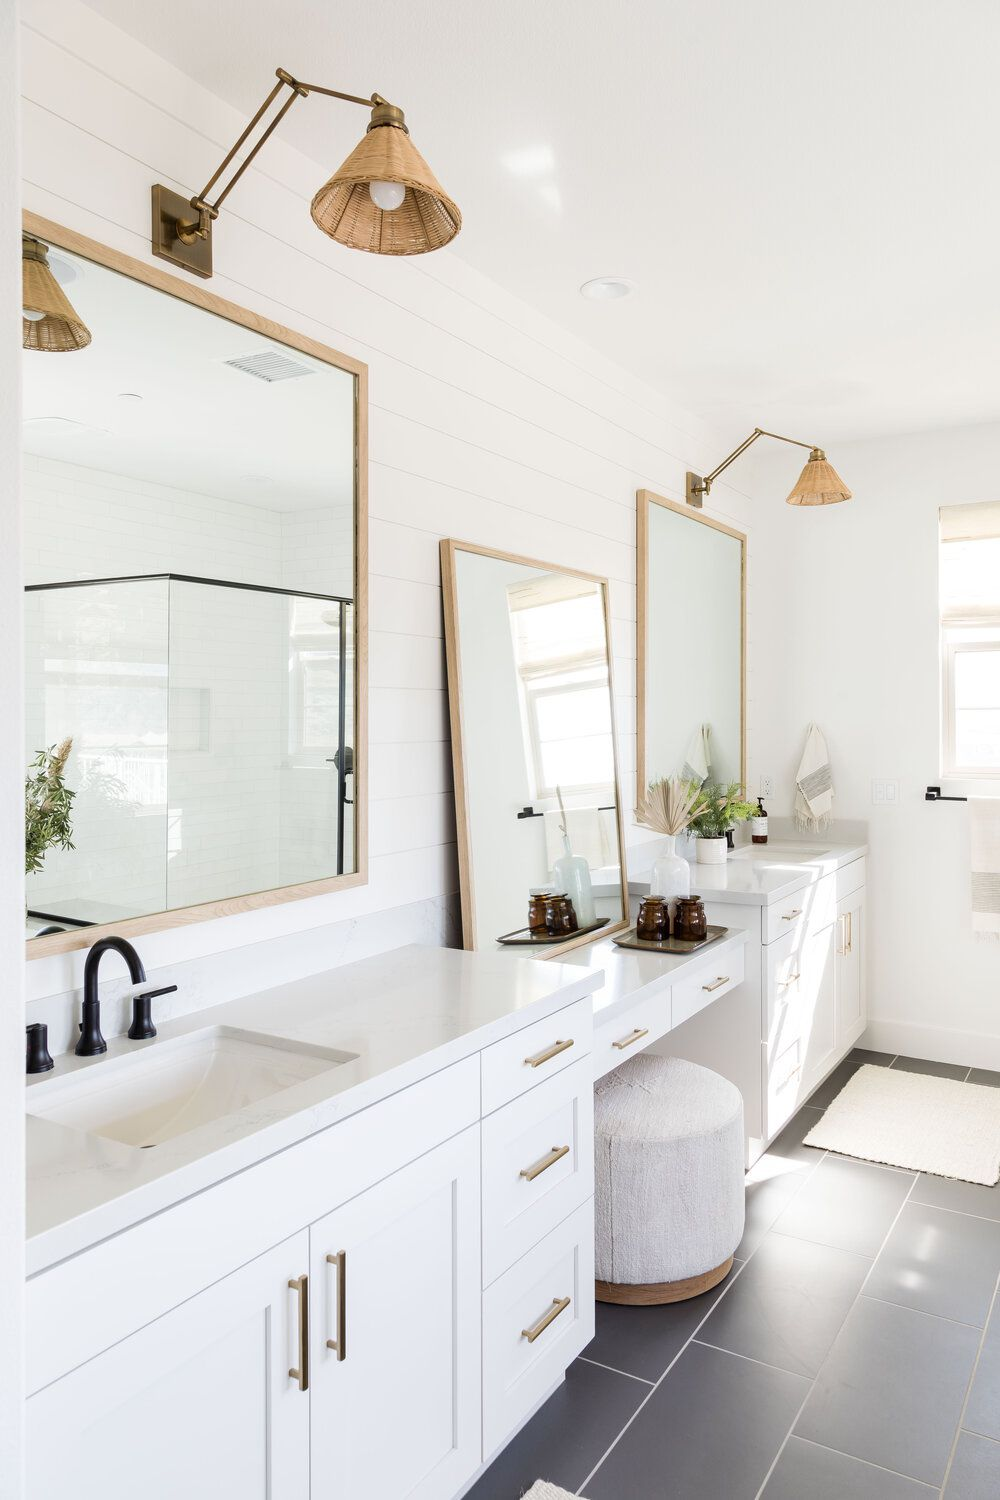 bathroom with double vanity and gold details